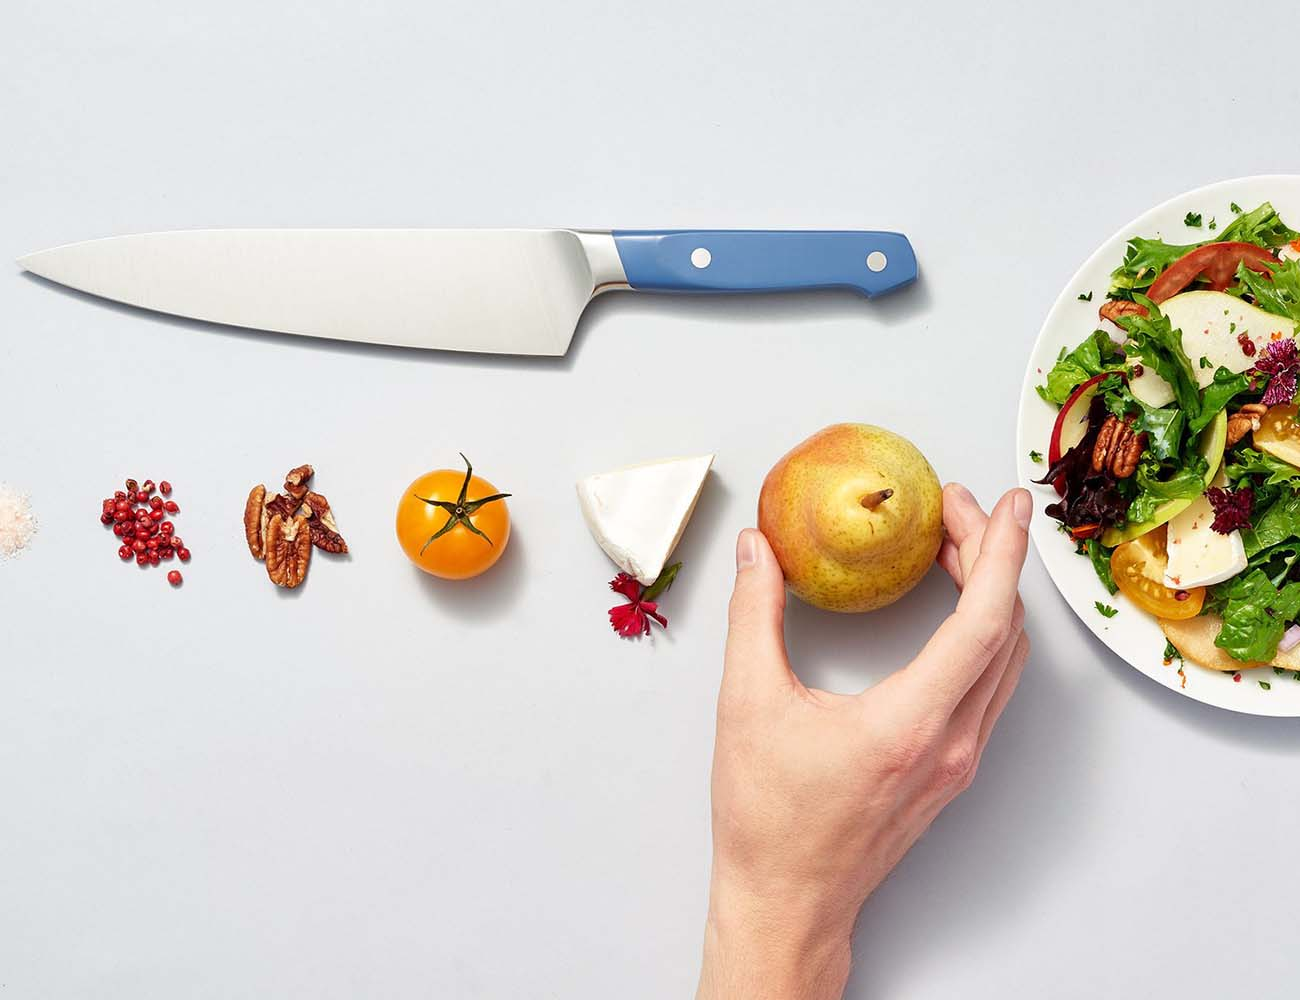 Misen – The Versatile and Affordable Kitchen Knife